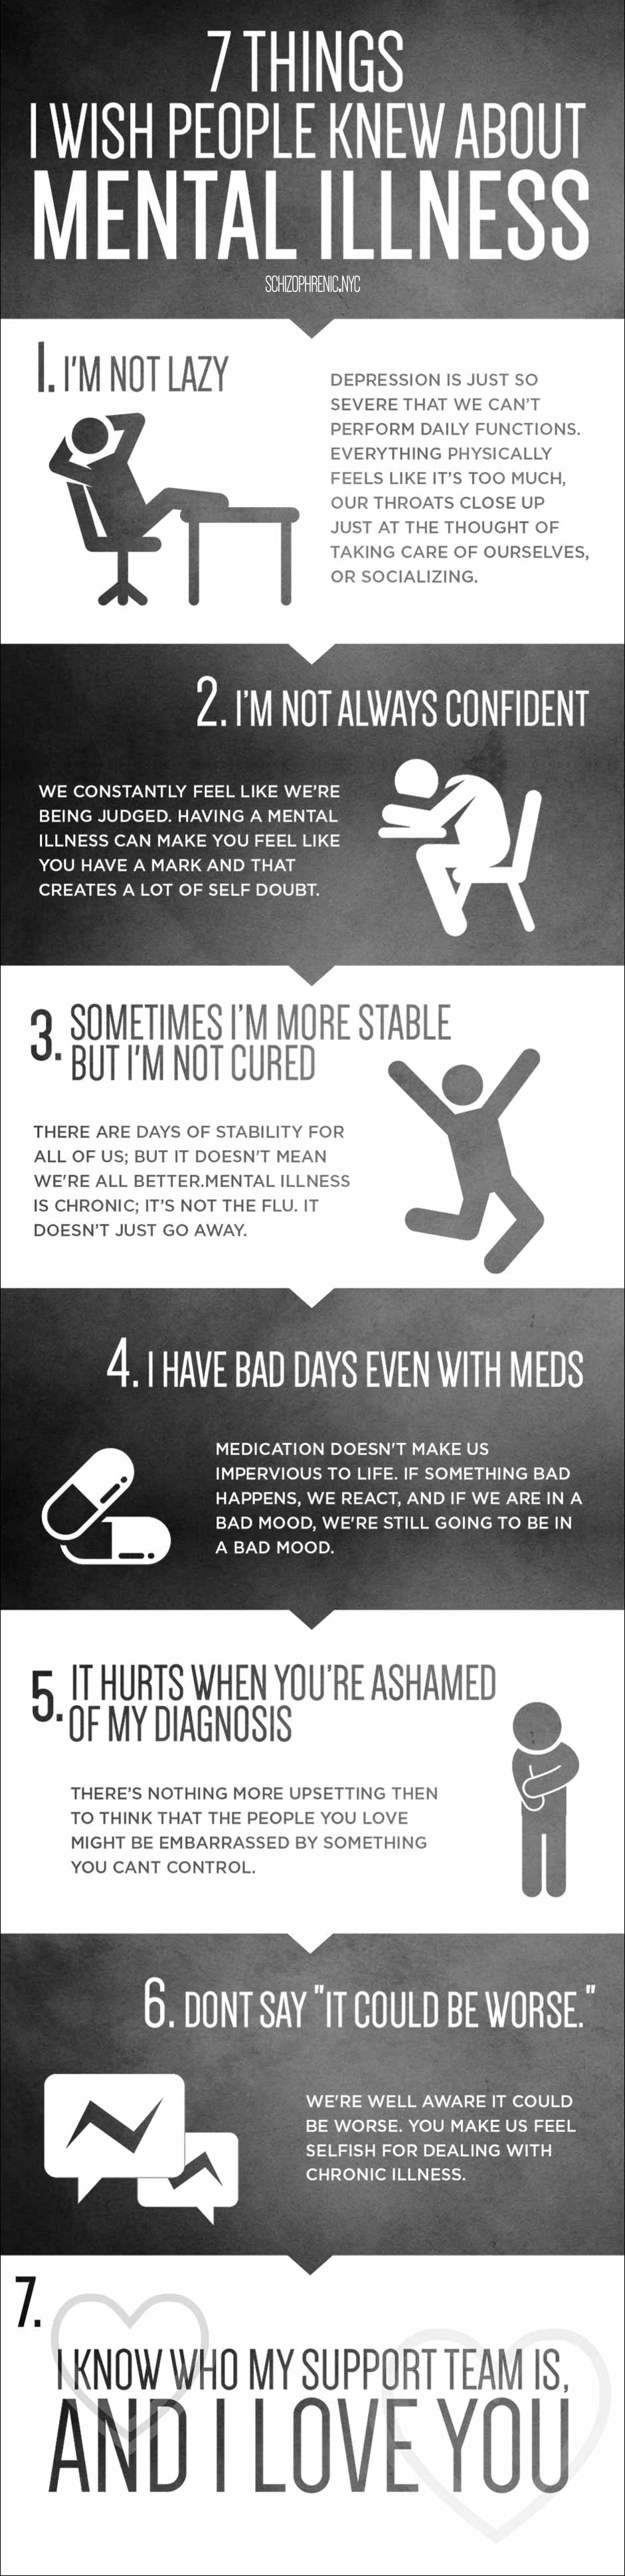 7 things i wish people knew about mental illness infographic 1